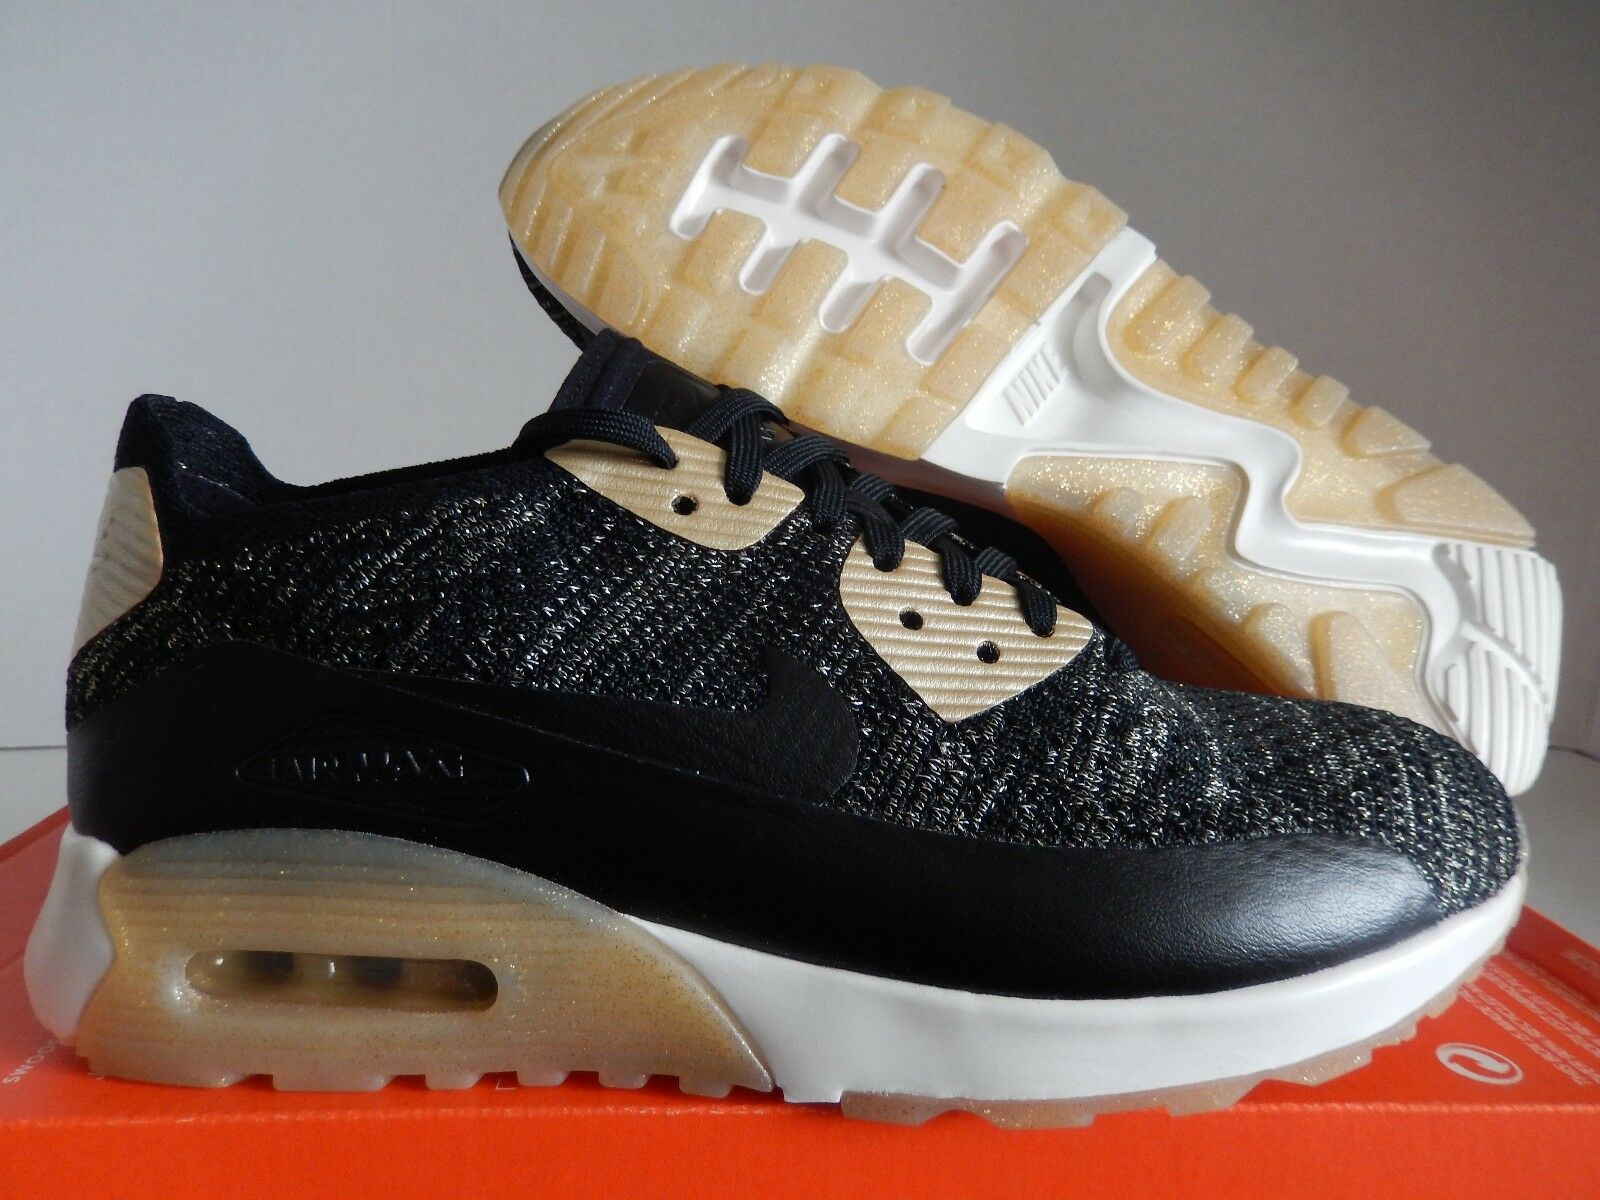 WMNS NIKE AIR MAX 90 ULTRA 2.0 FLYKNIT BLACK-GOLD Price reduction